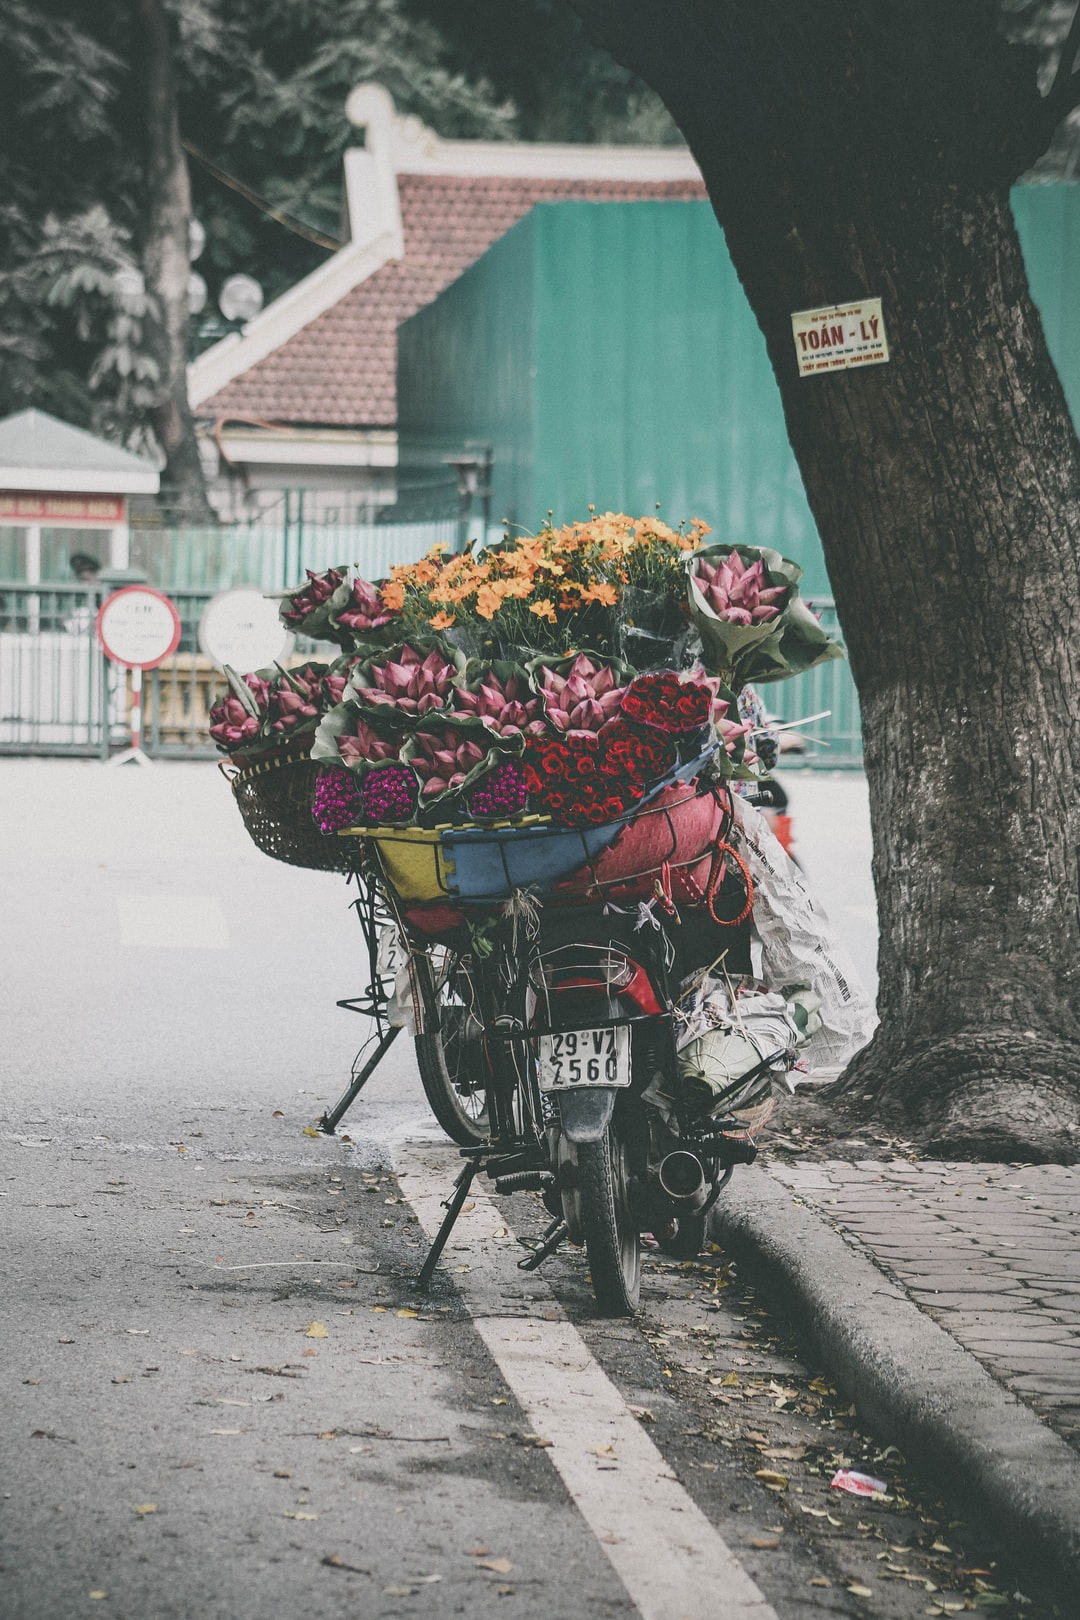 Flower delivery bicycle